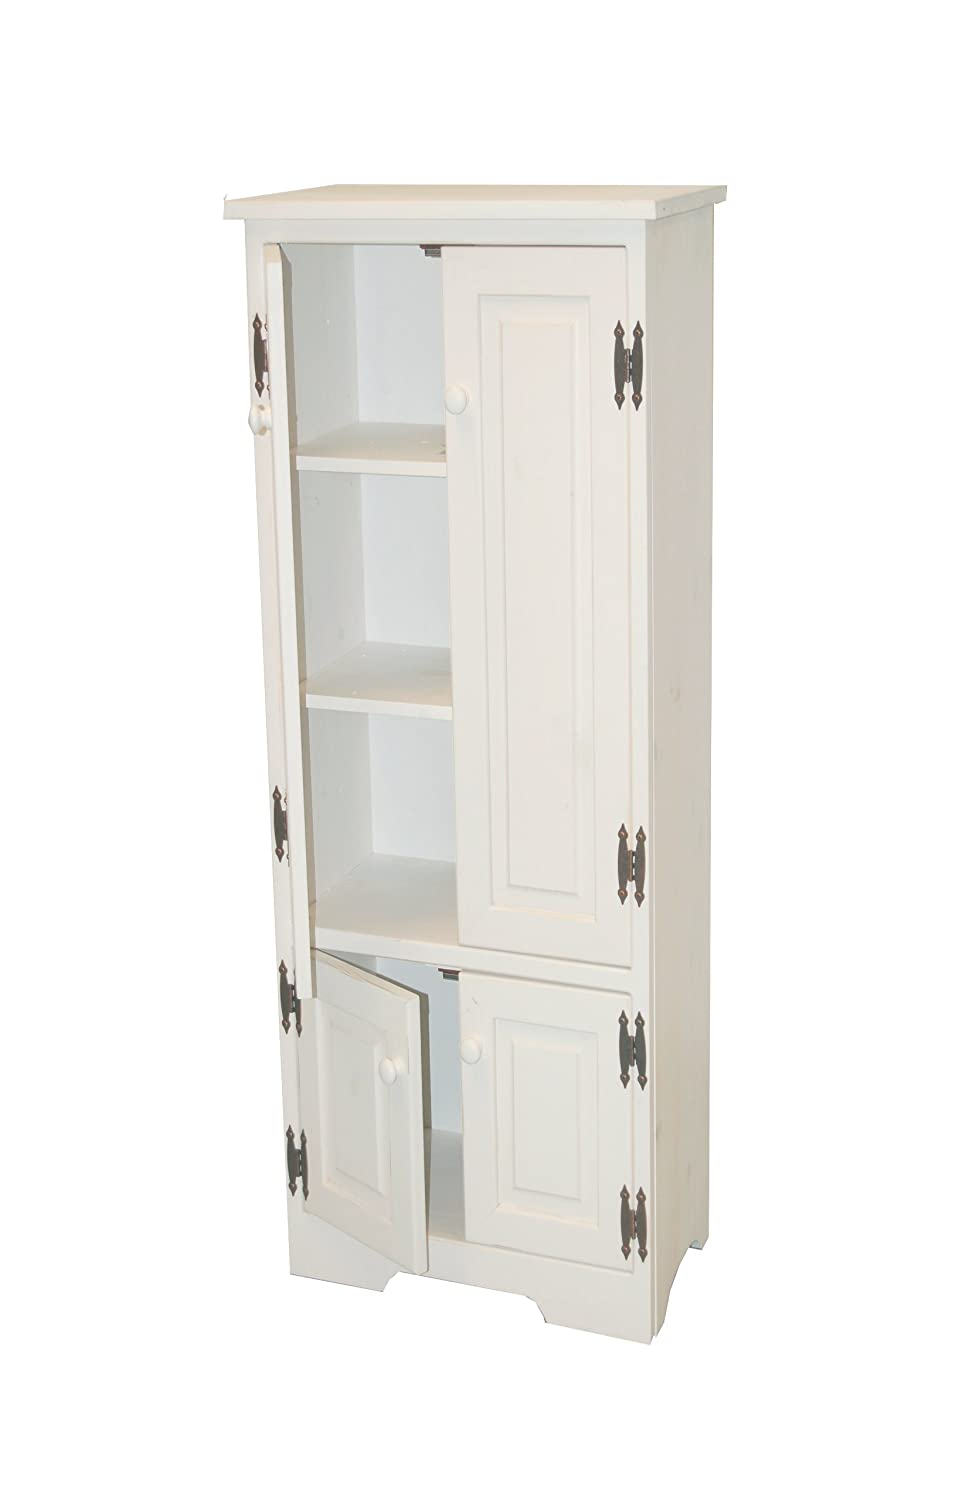 amazing door drawers drawer design in file at with ideas cabinet about storage doors tall corner white home inspiration and bathroom remarkable